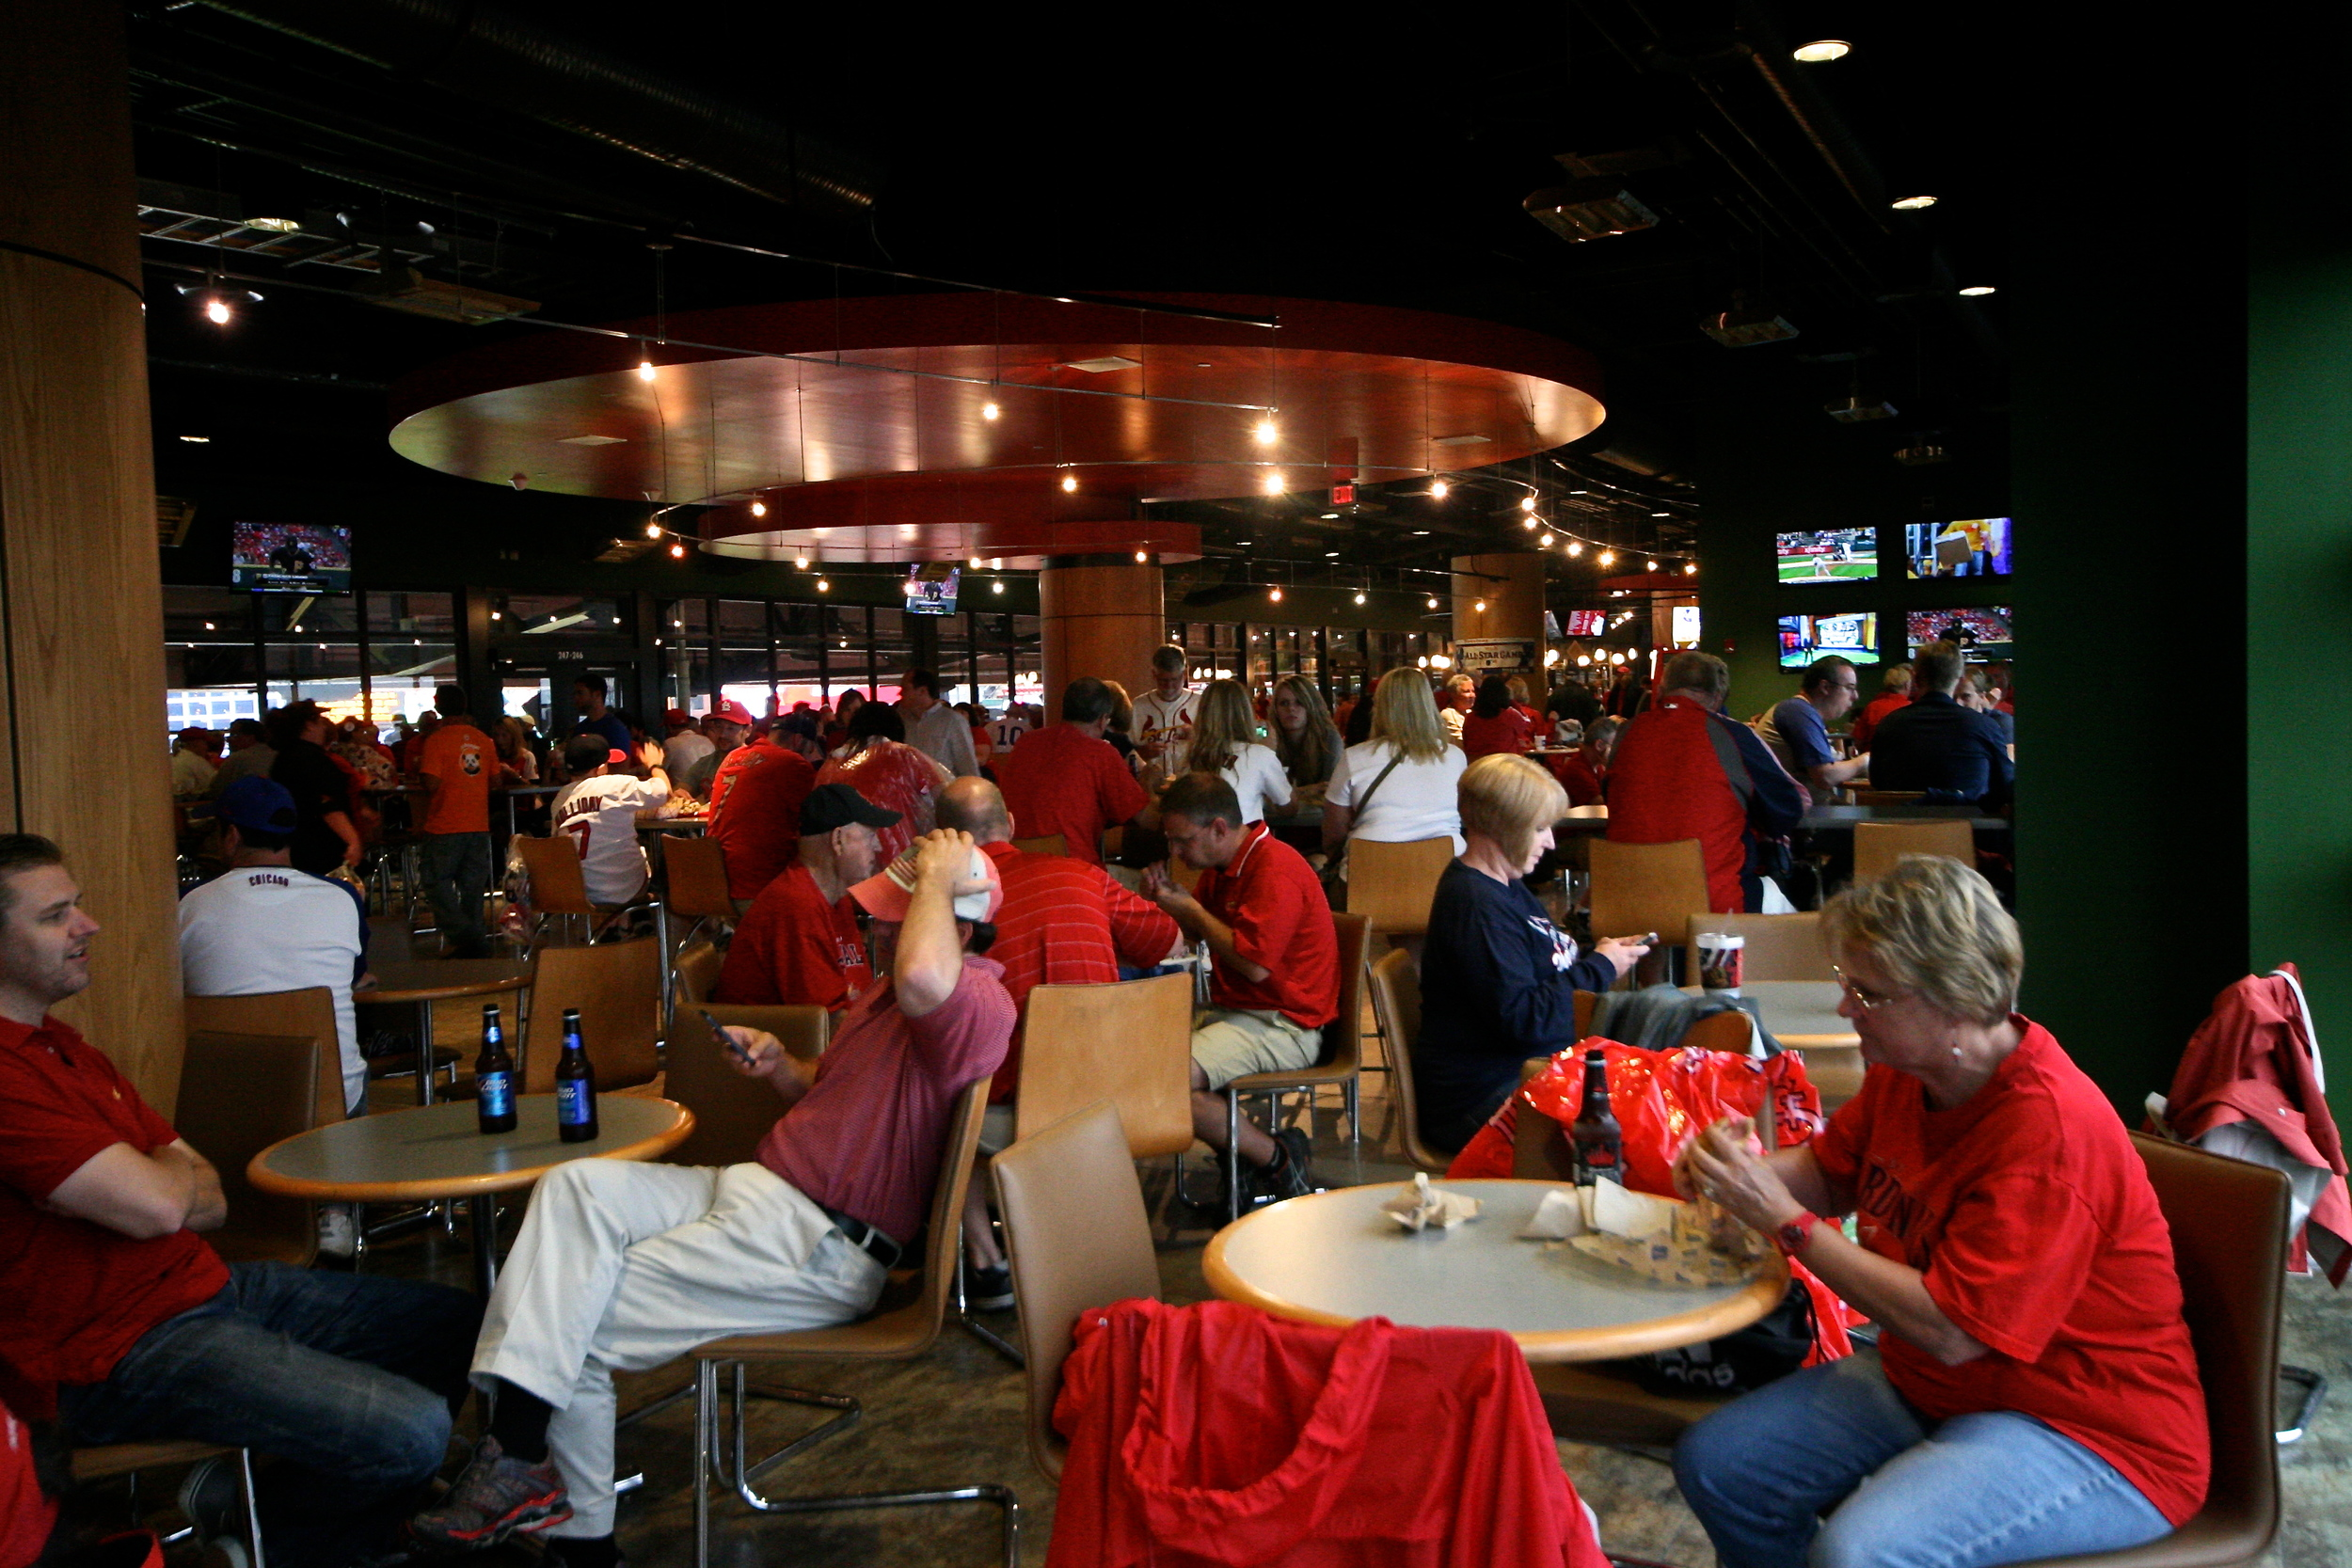 Waiting out the rain delay in the RedBird Club